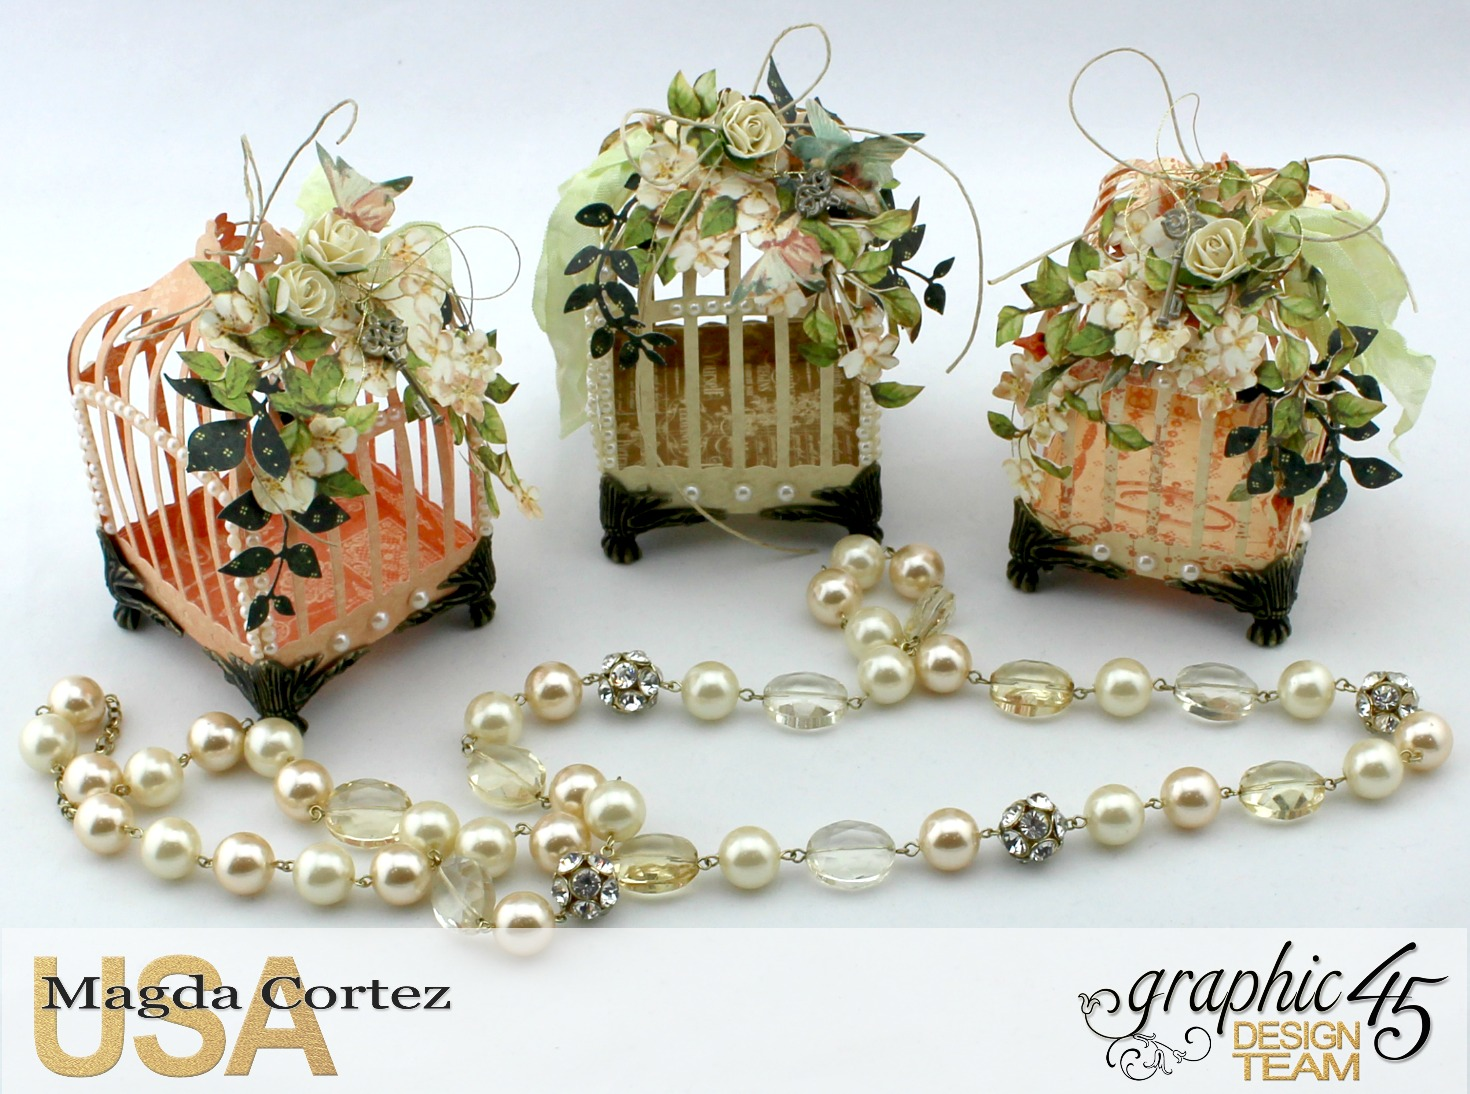 3D Birdcages Simply 45-Wedding Favor- Secret Garden By Magda Cortez, Product By G45, Photo 01 of 06, Project with Tutorial.jpg